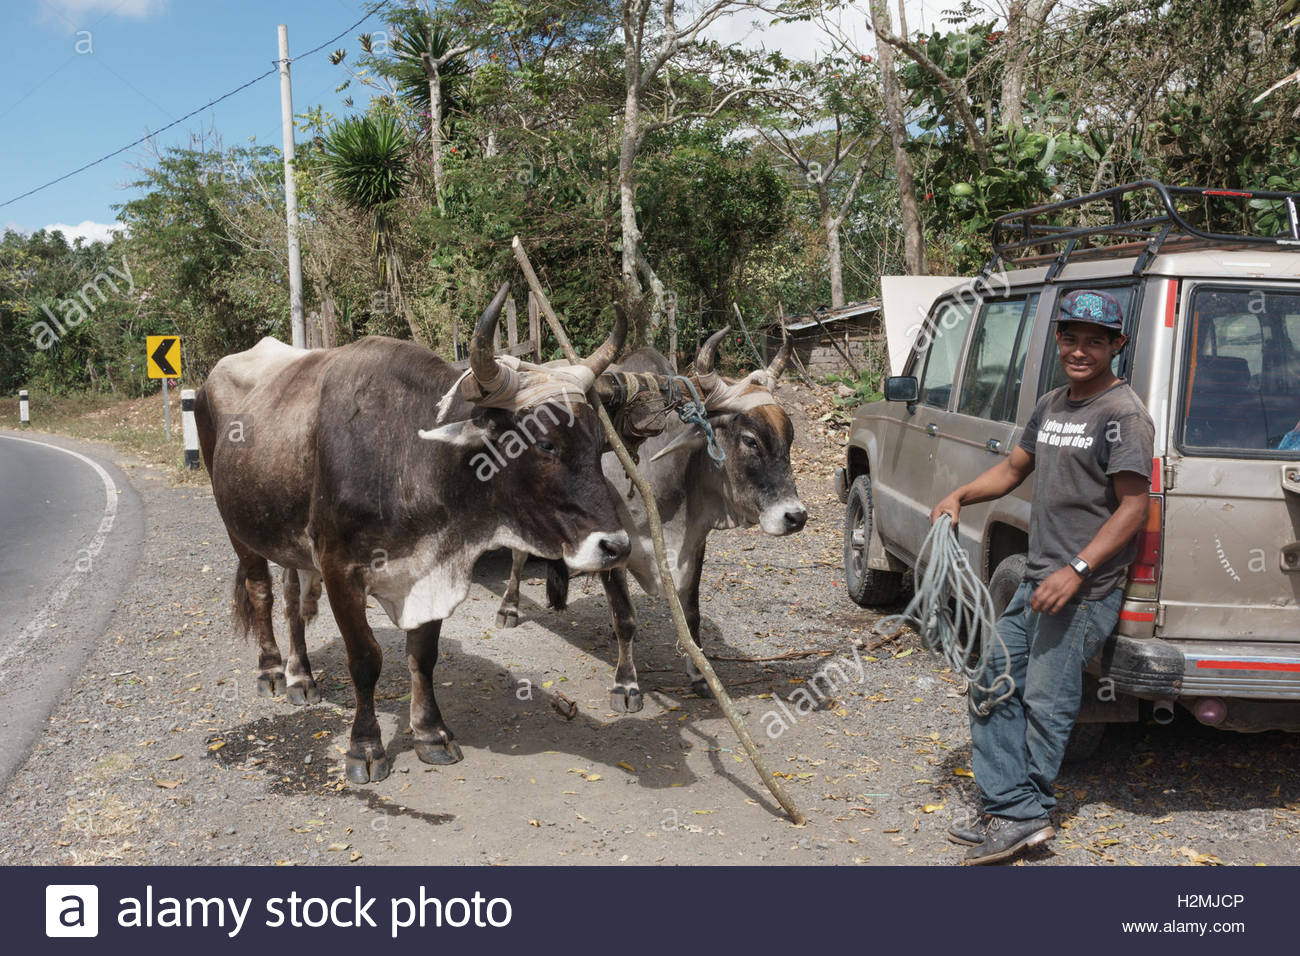 A yoke of oxen and their driver in Jinotega Department. - Stock Image